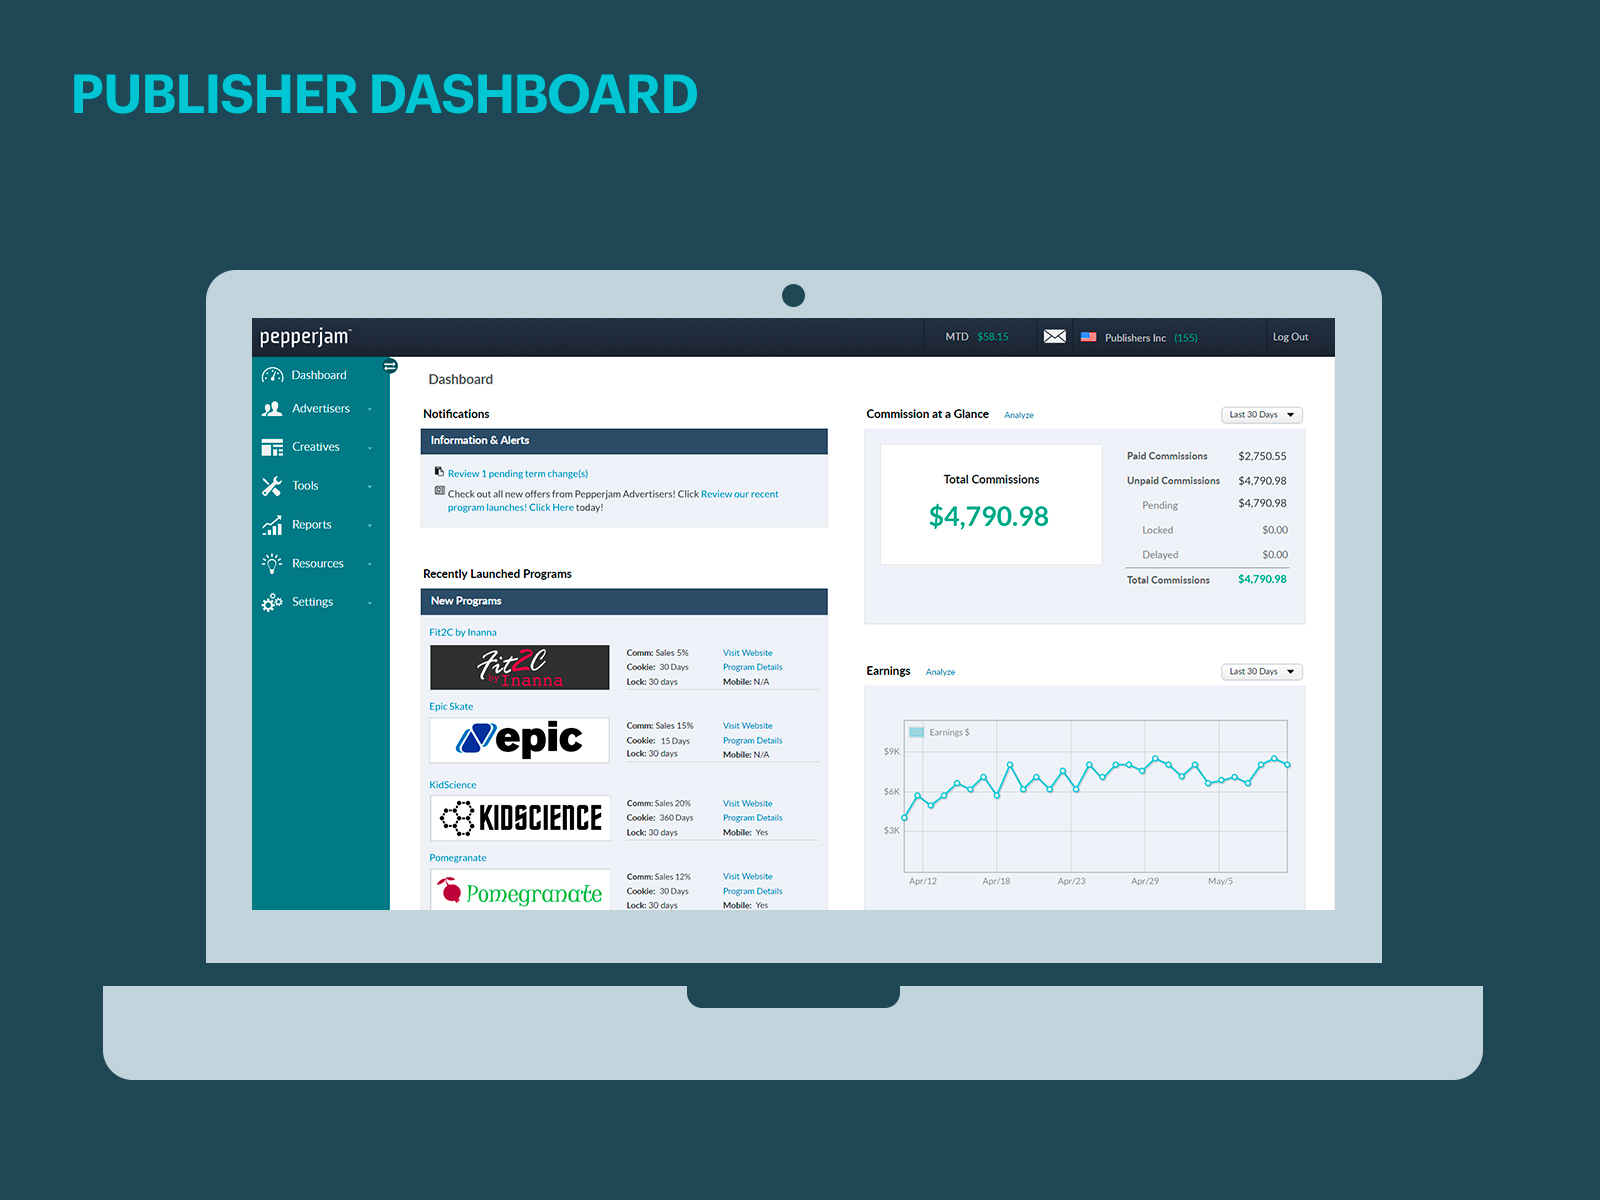 Pepperjam Publisher Dashboard | www.pepperjam.com